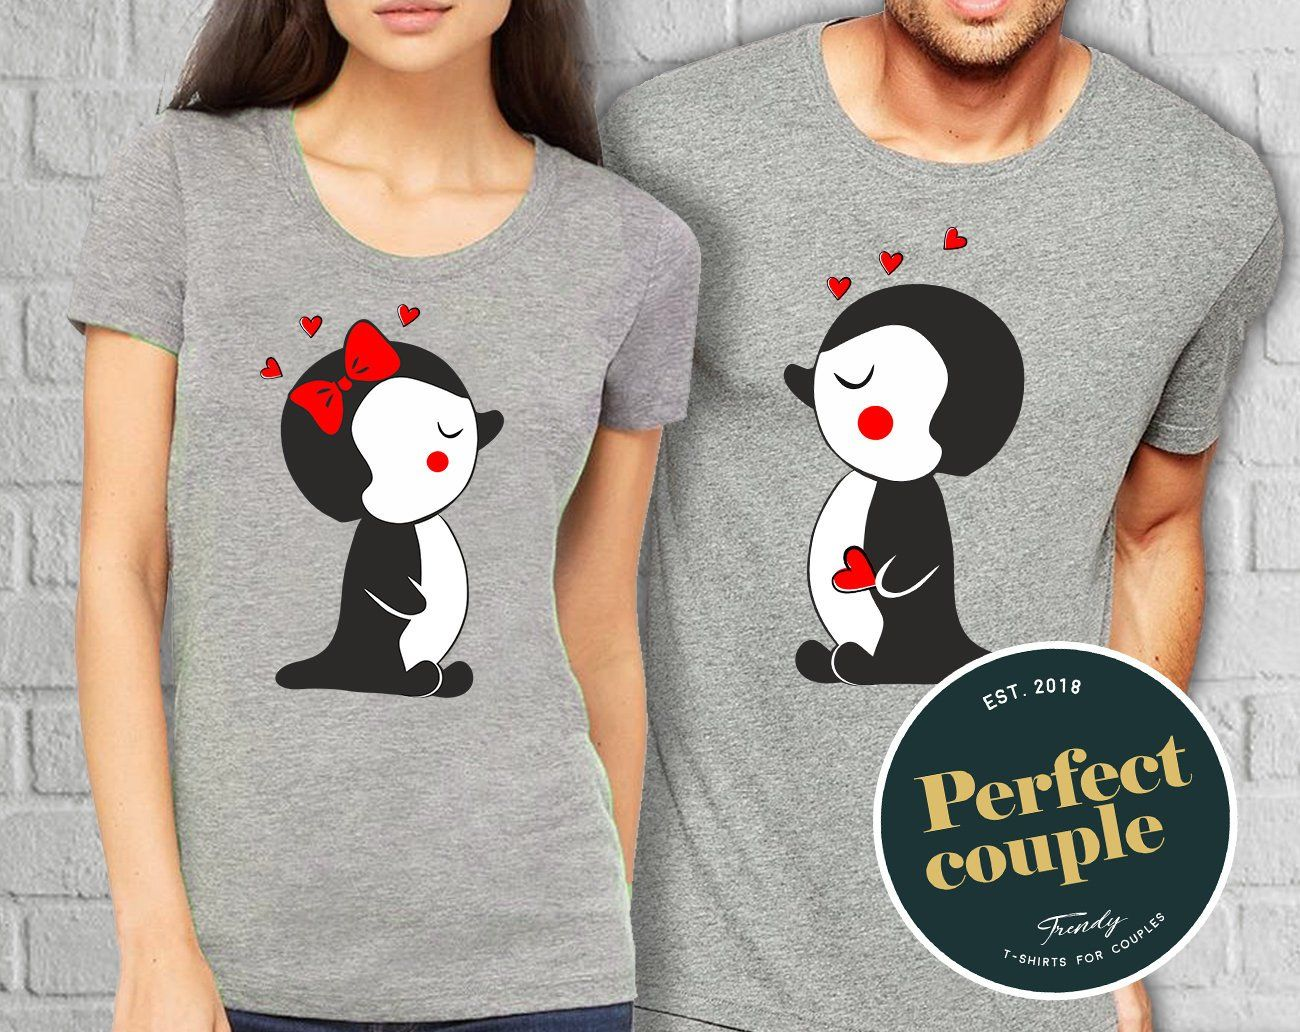 Pin by Caro Fernández on whatever | Trendy tshirts, Matching